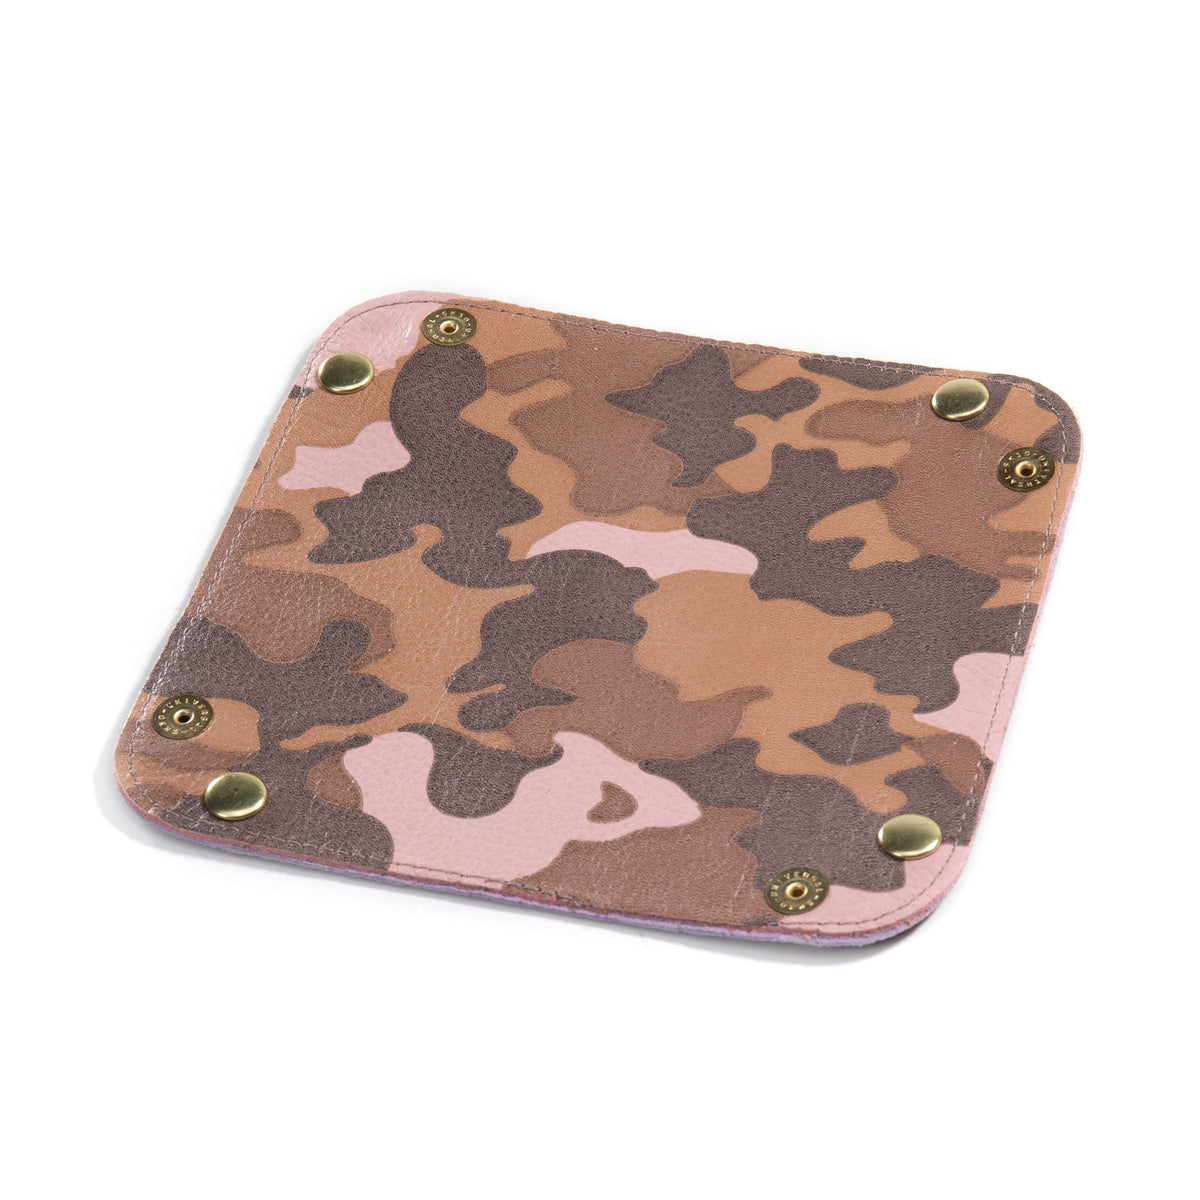 Purple & Tan Camo CRONJA Tray